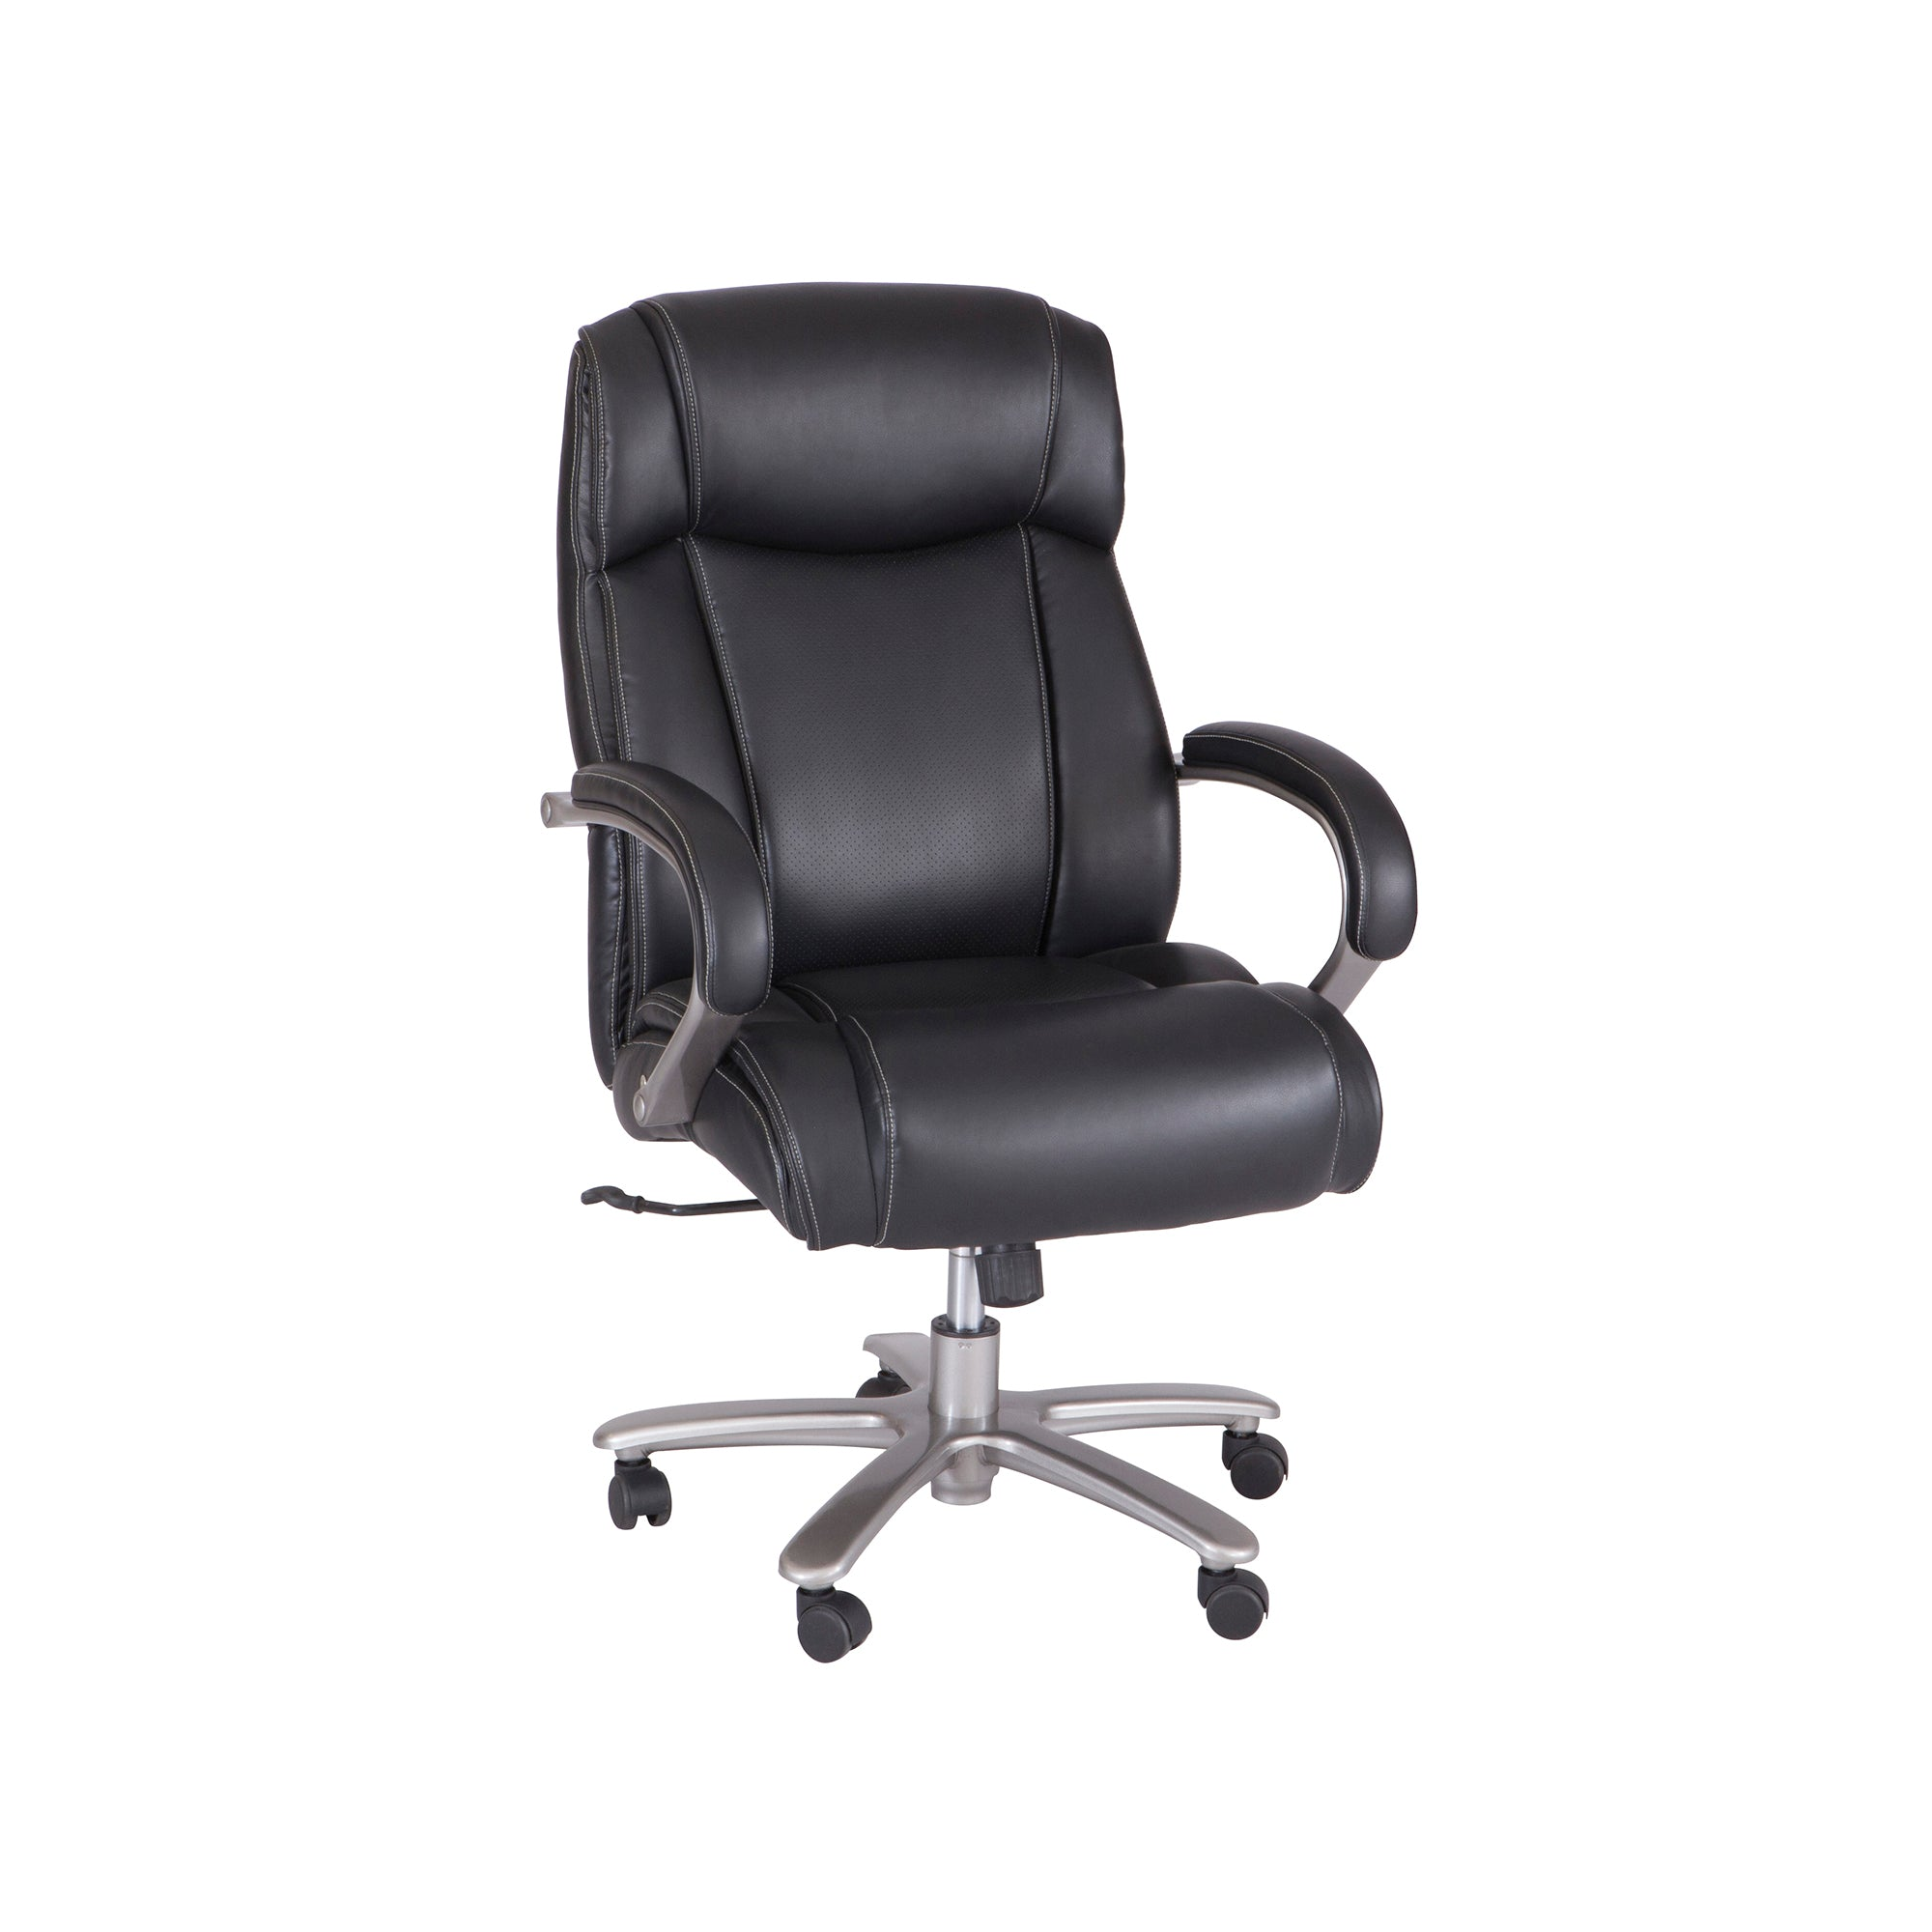 Strange Heavy Duty Rolling Leather Desk Chair In Black Pabps2019 Chair Design Images Pabps2019Com